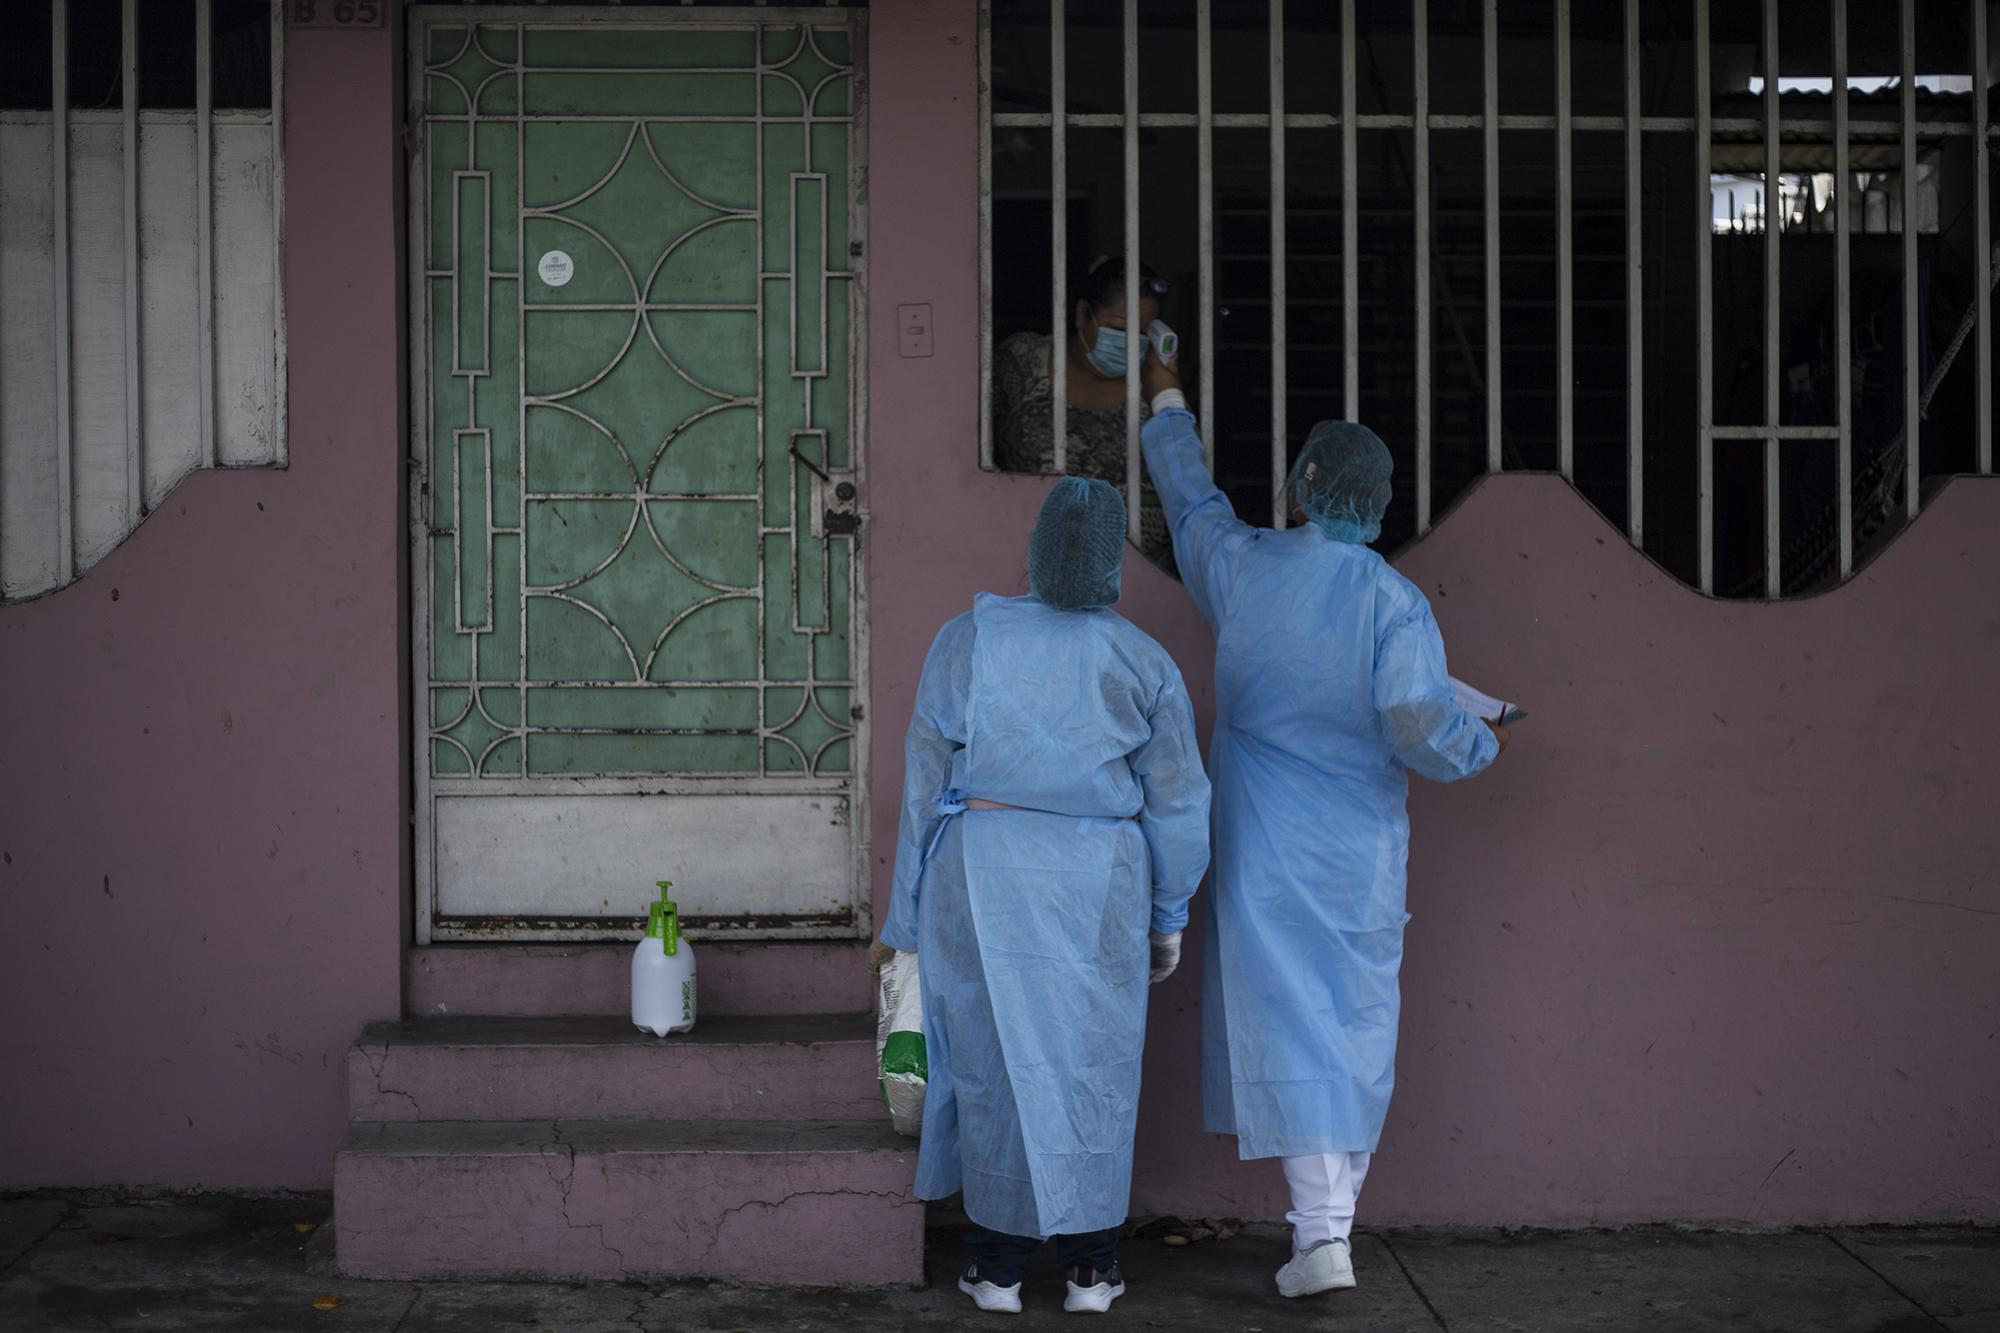 A medical response team travels door-to-door through the neighborhoods of Soyapango to detect cases of covid-19, check temperatures, and give instructions on social distancing, the use of masks, and handwashing. This team, which works in one of the most populated municipalities in the department of San Salvador, has reported up to six suspected covid-19 cases every day since it began working on May 23.